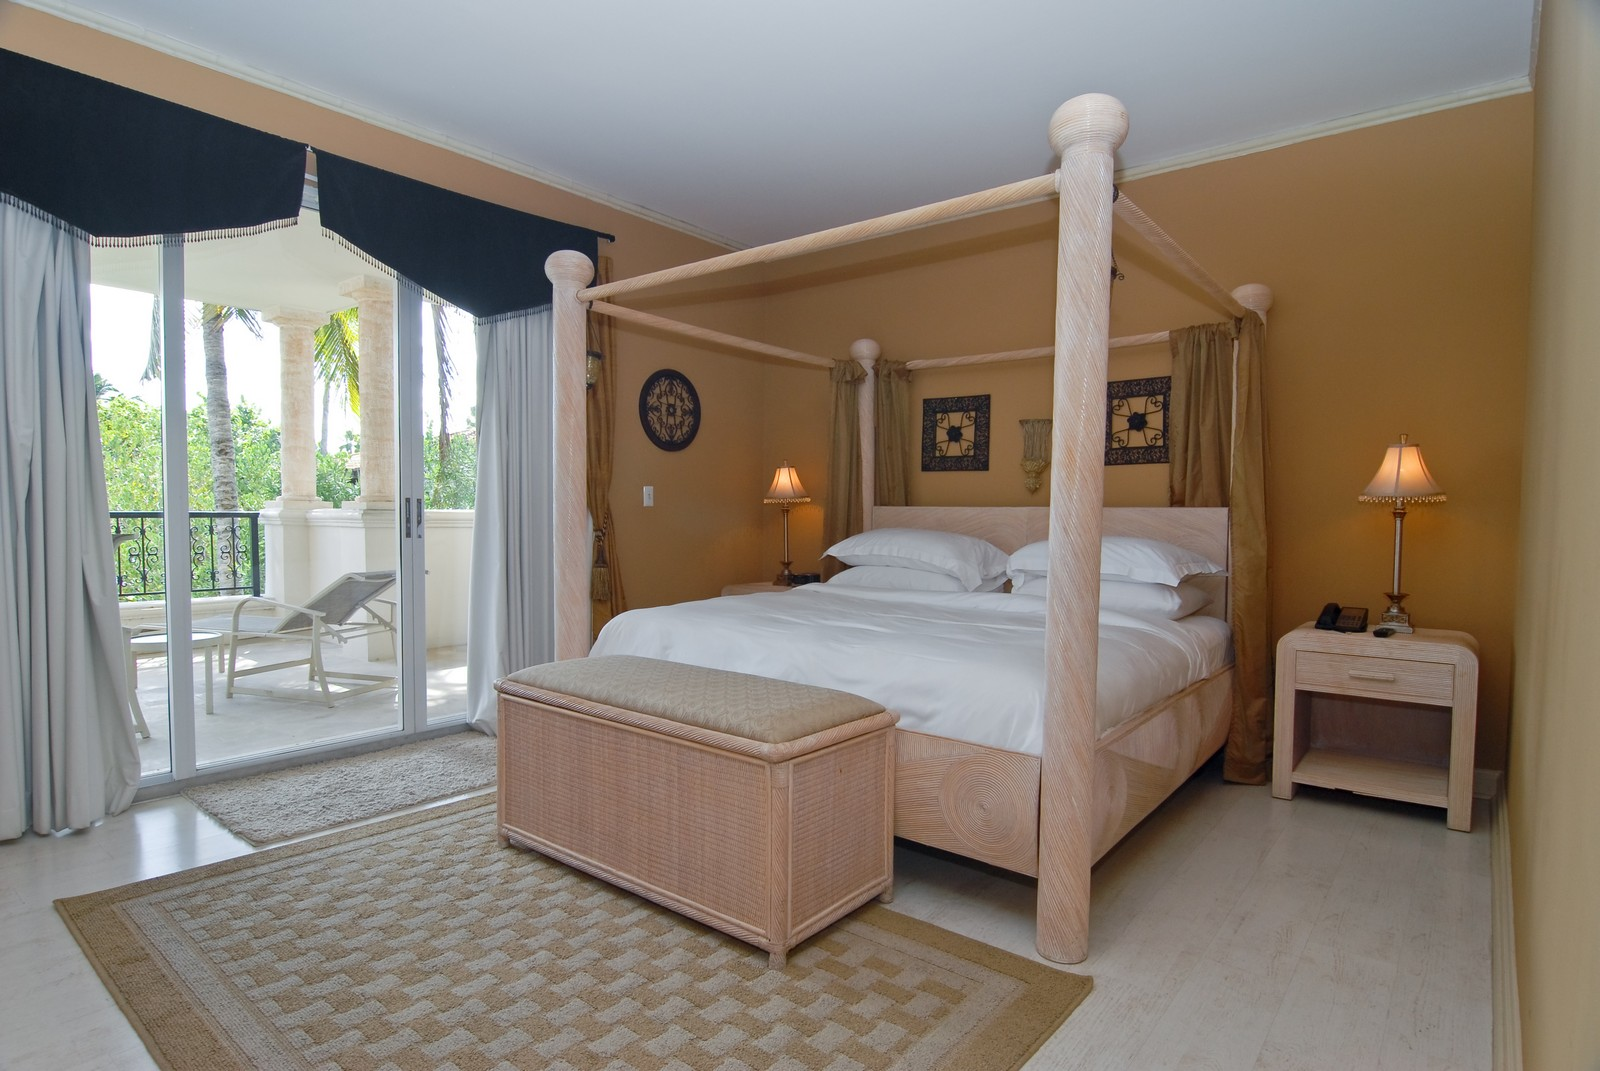 Real Estate Photography - 19124 Fisher Island Drive, Fisher Island, FL, 33109 - Master Bedroom